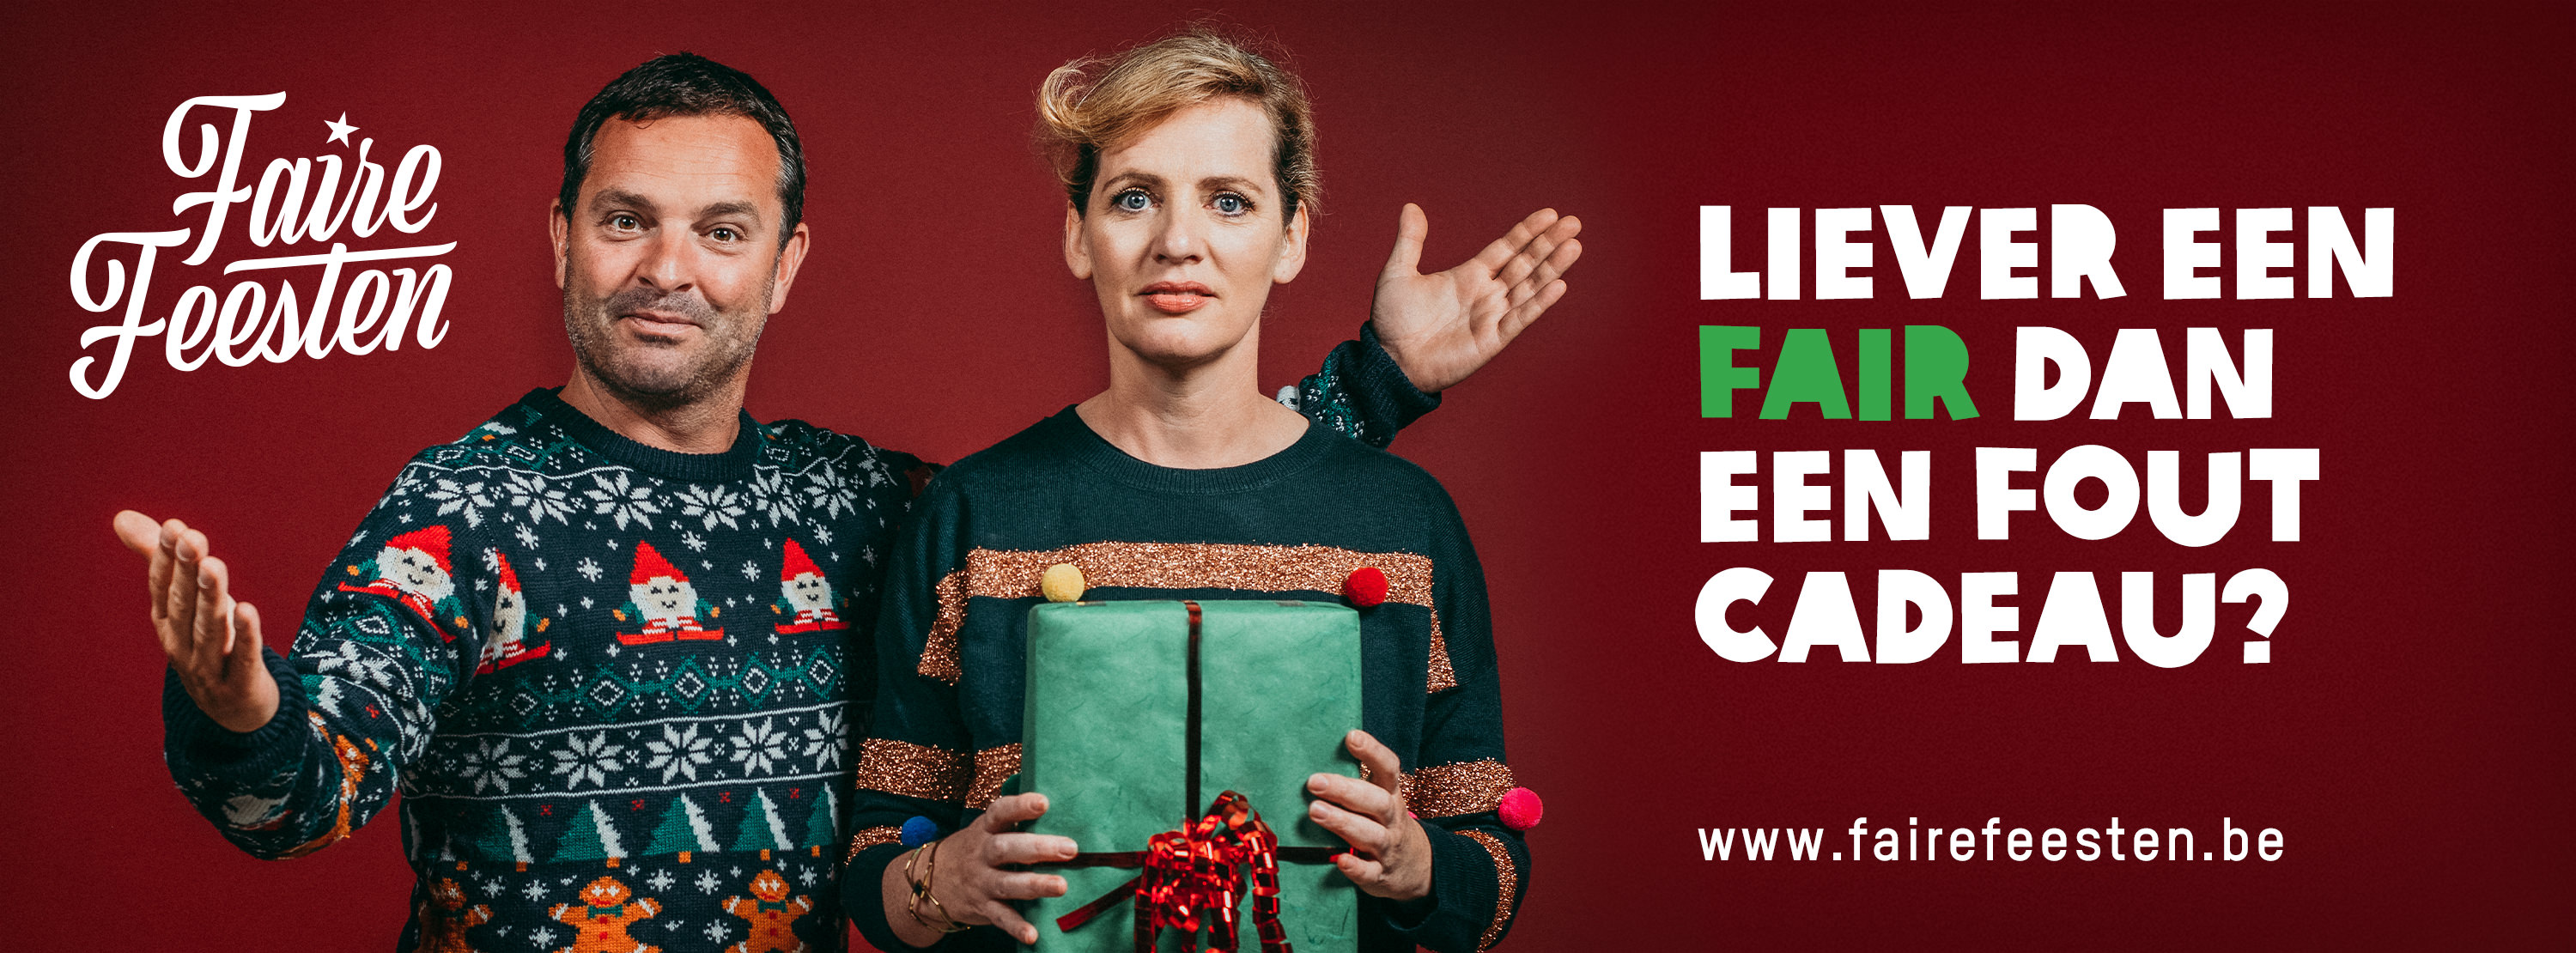 Oxfam campagne